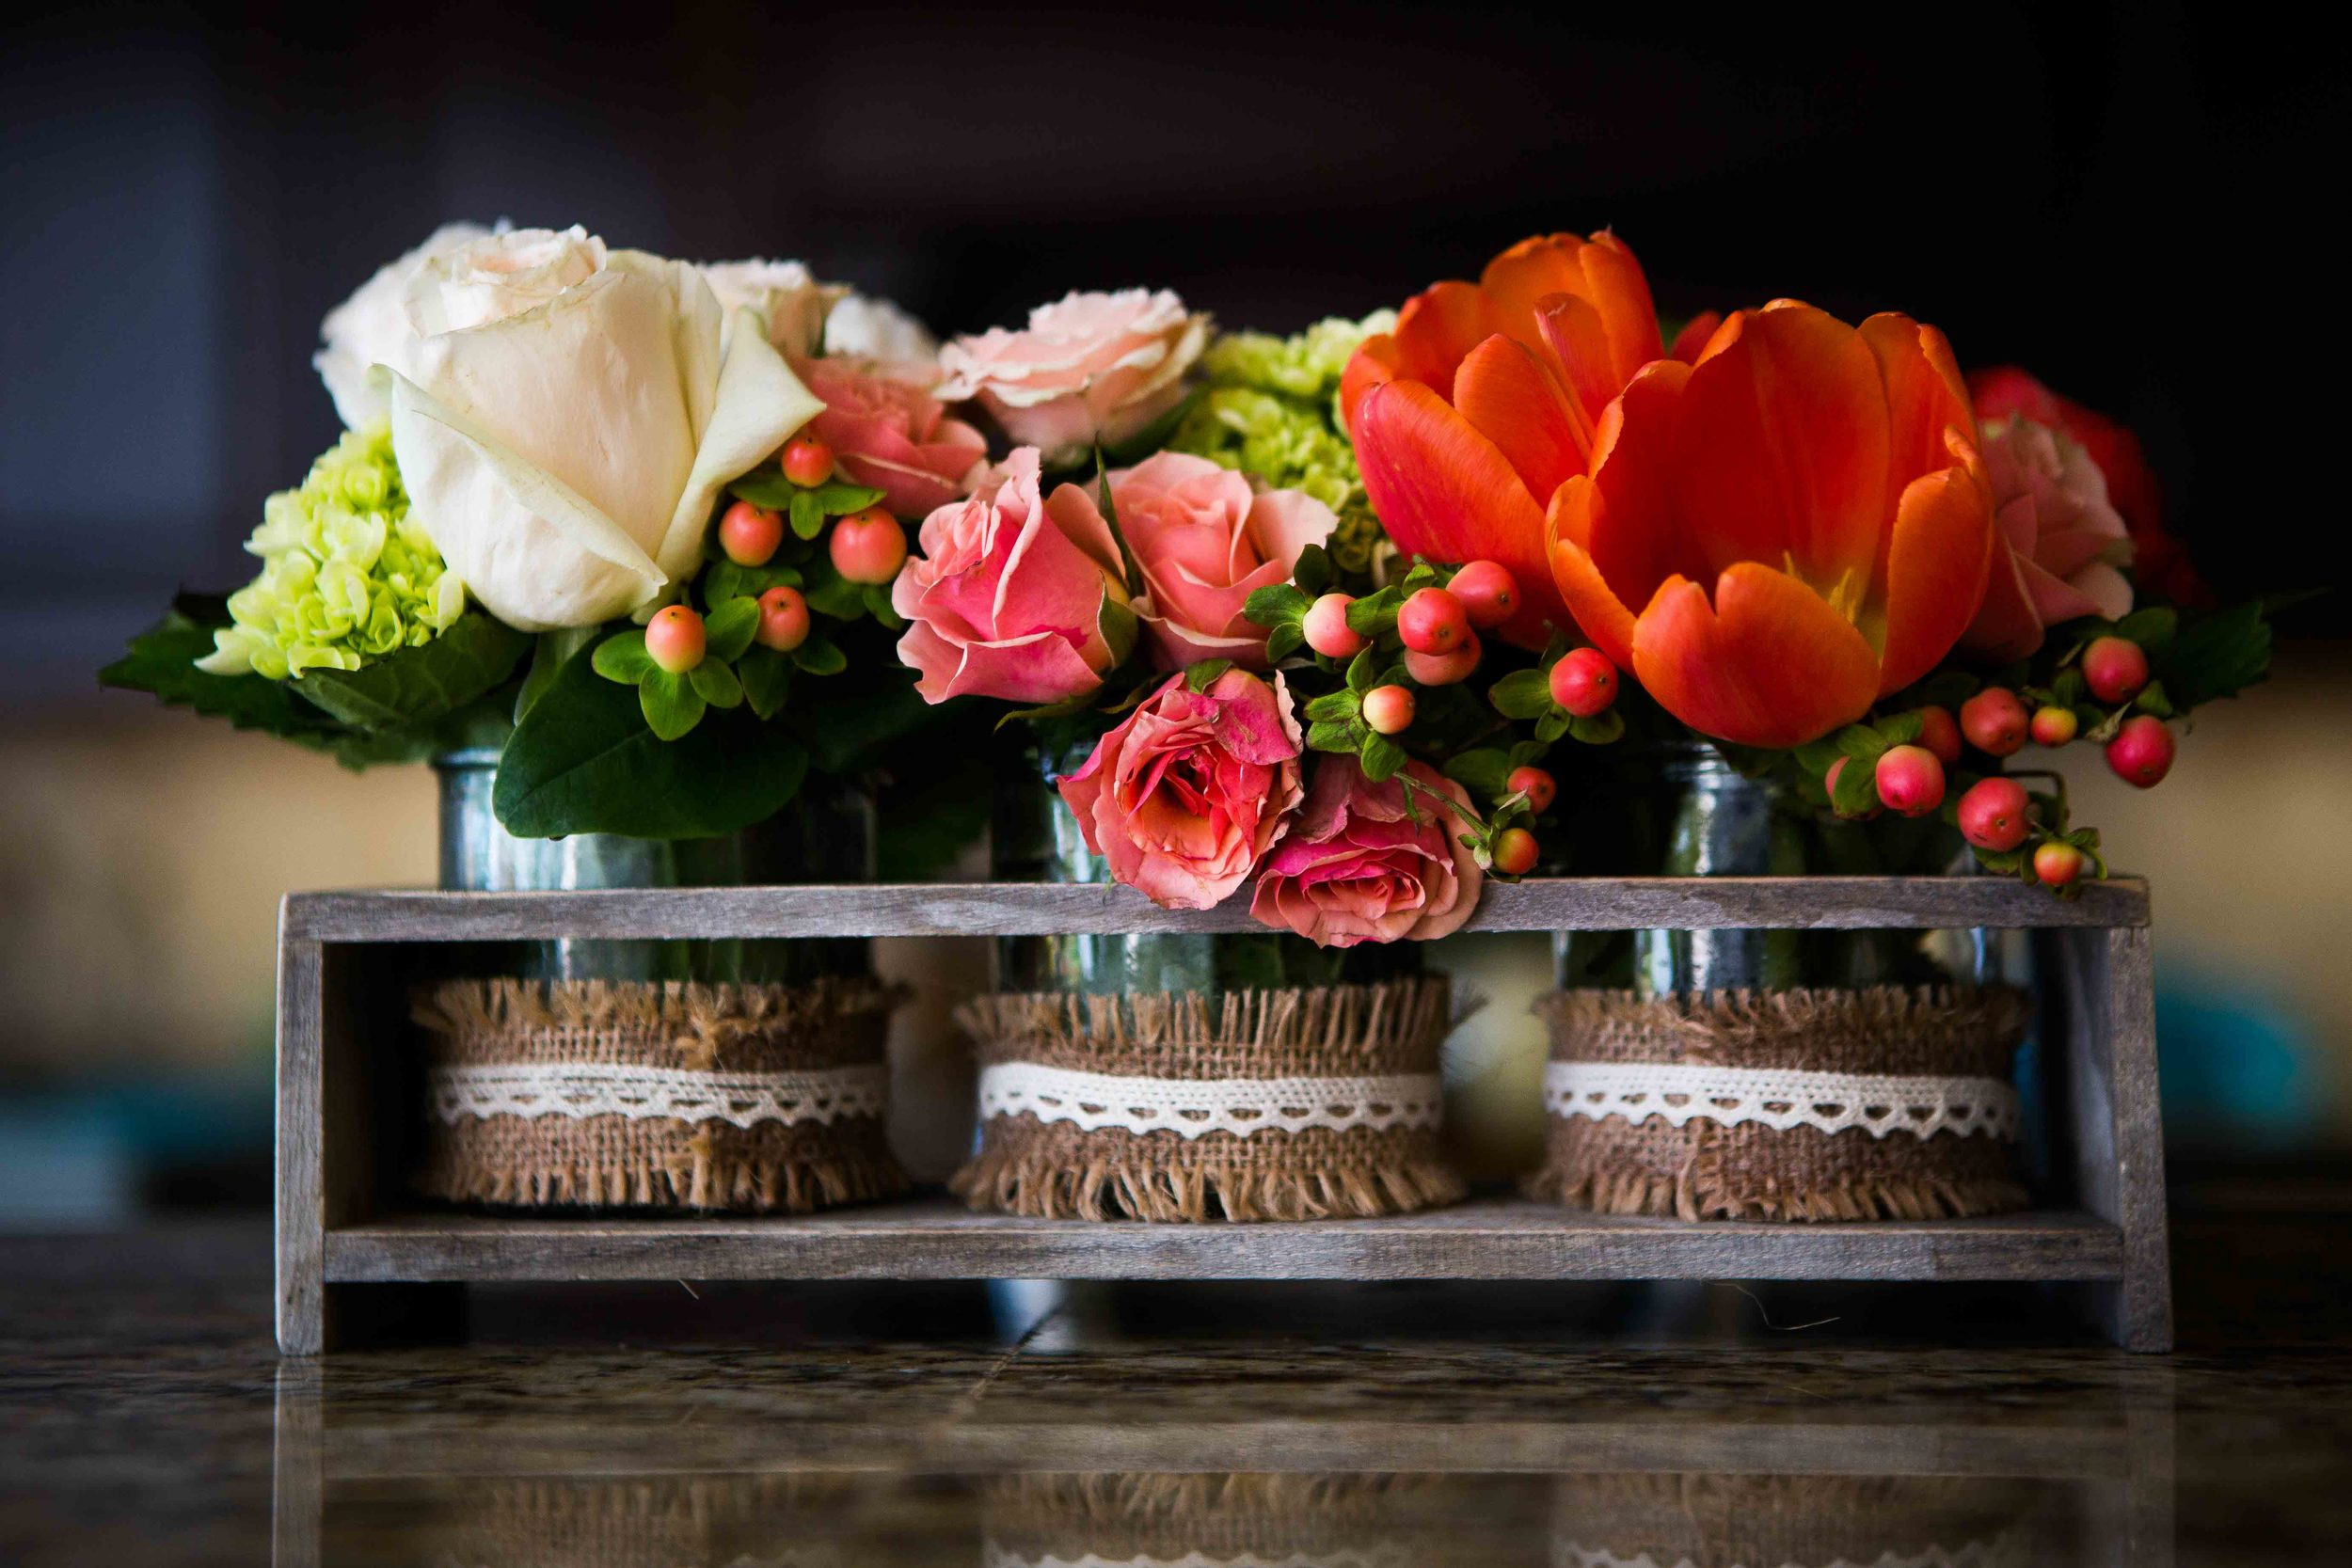 Mom also created these beautiful little flower displays.